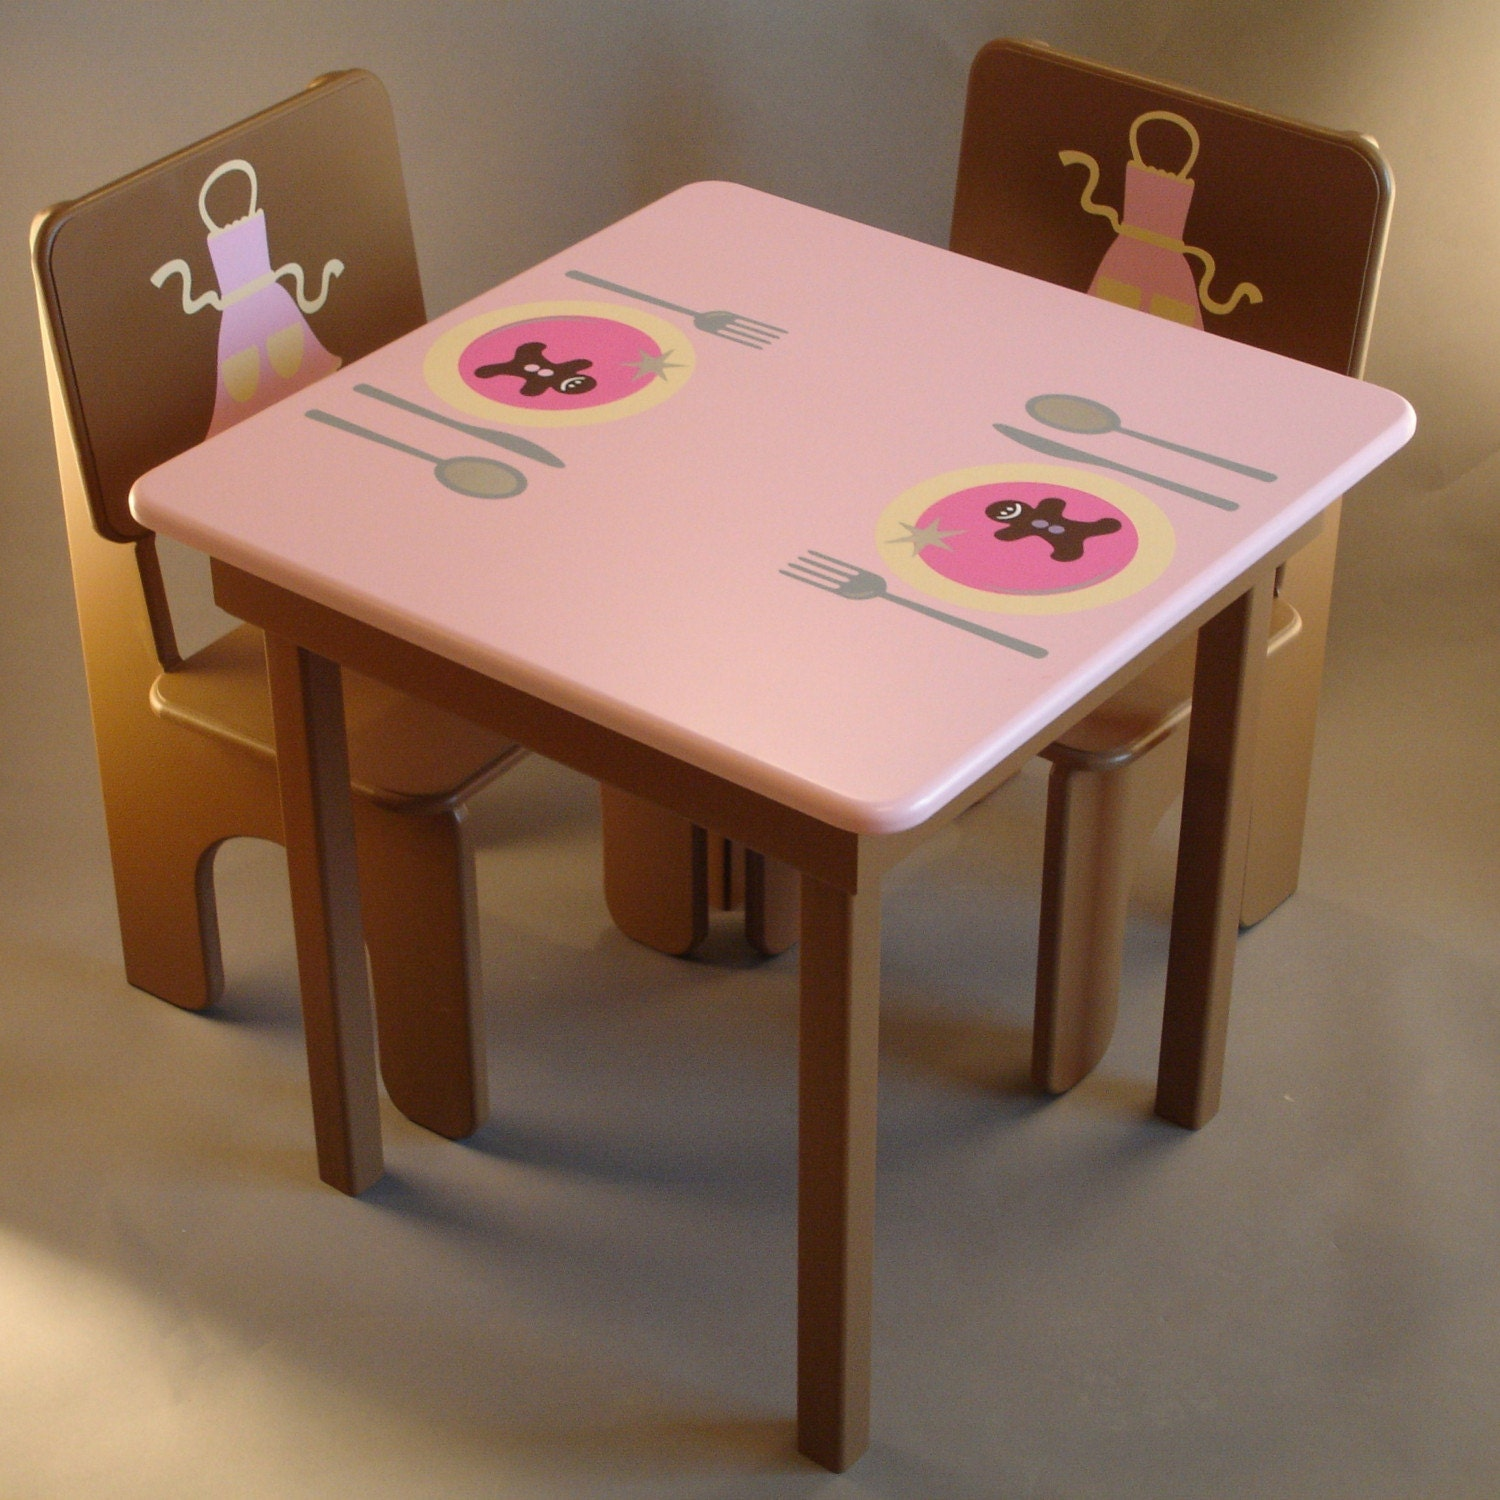 items similar to little girls kitchen table and chairs in pink and brown on etsy. Black Bedroom Furniture Sets. Home Design Ideas